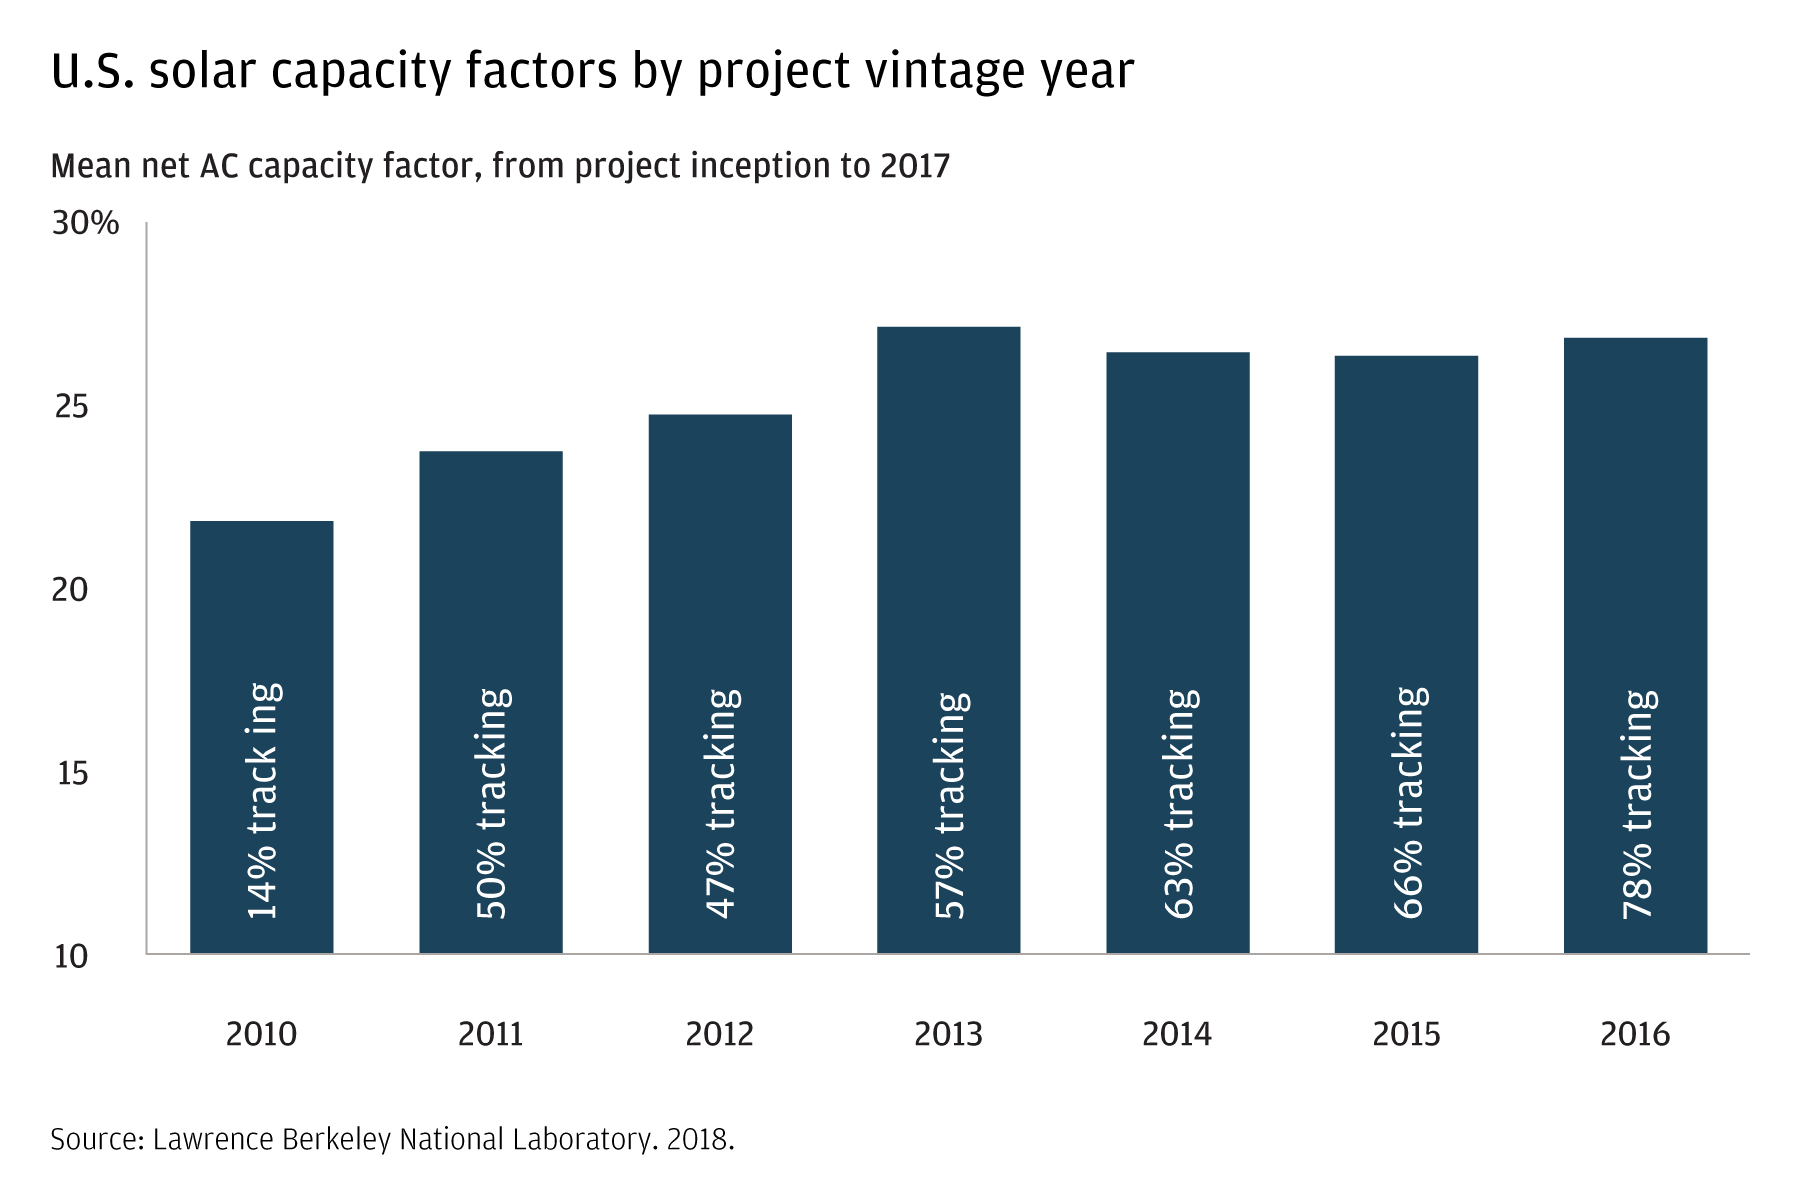 This bar chart shows the year-by-year capacity factor, from project inception to 2017. It also shows the percentage of tracking, rather than fixed tilt, panels in use. In 2010, the figure was around 22 percent of capacity and tracking panels accounted for 14 percent of panels in use. In 2016, we were at 27 percent of capacity and tracking panels accounted for 78 percent of the total.